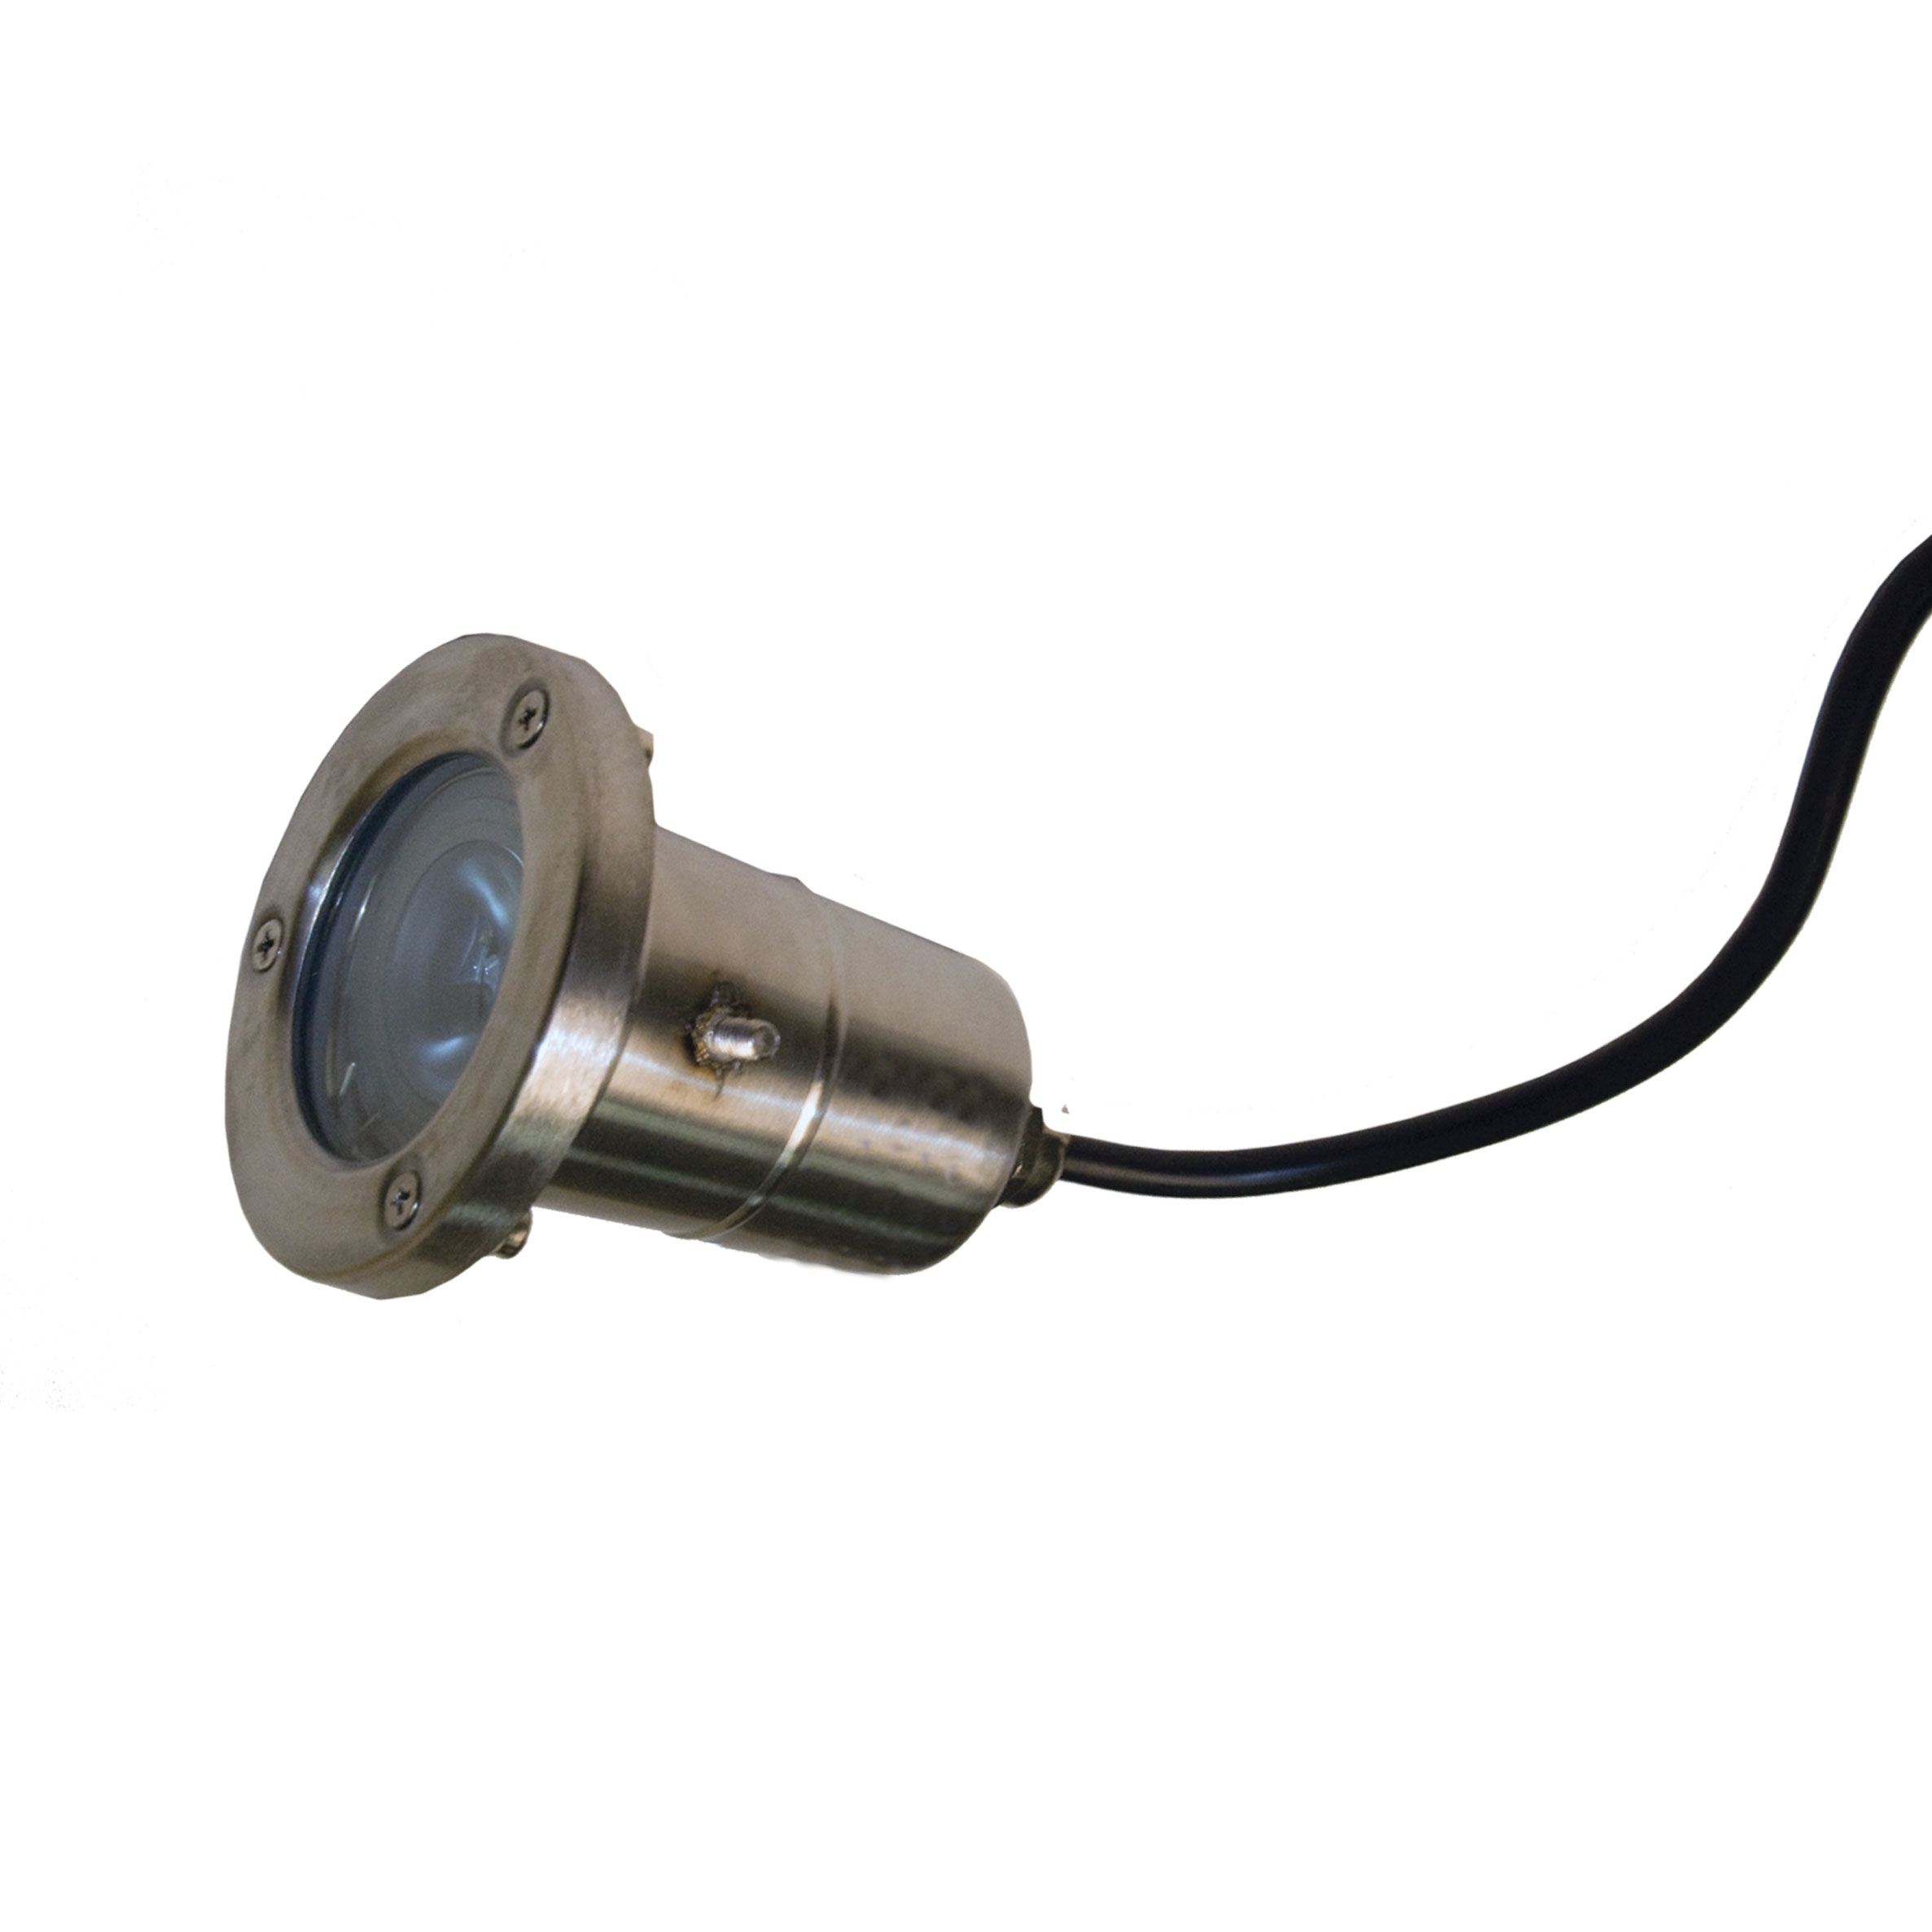 3W LED Lighting